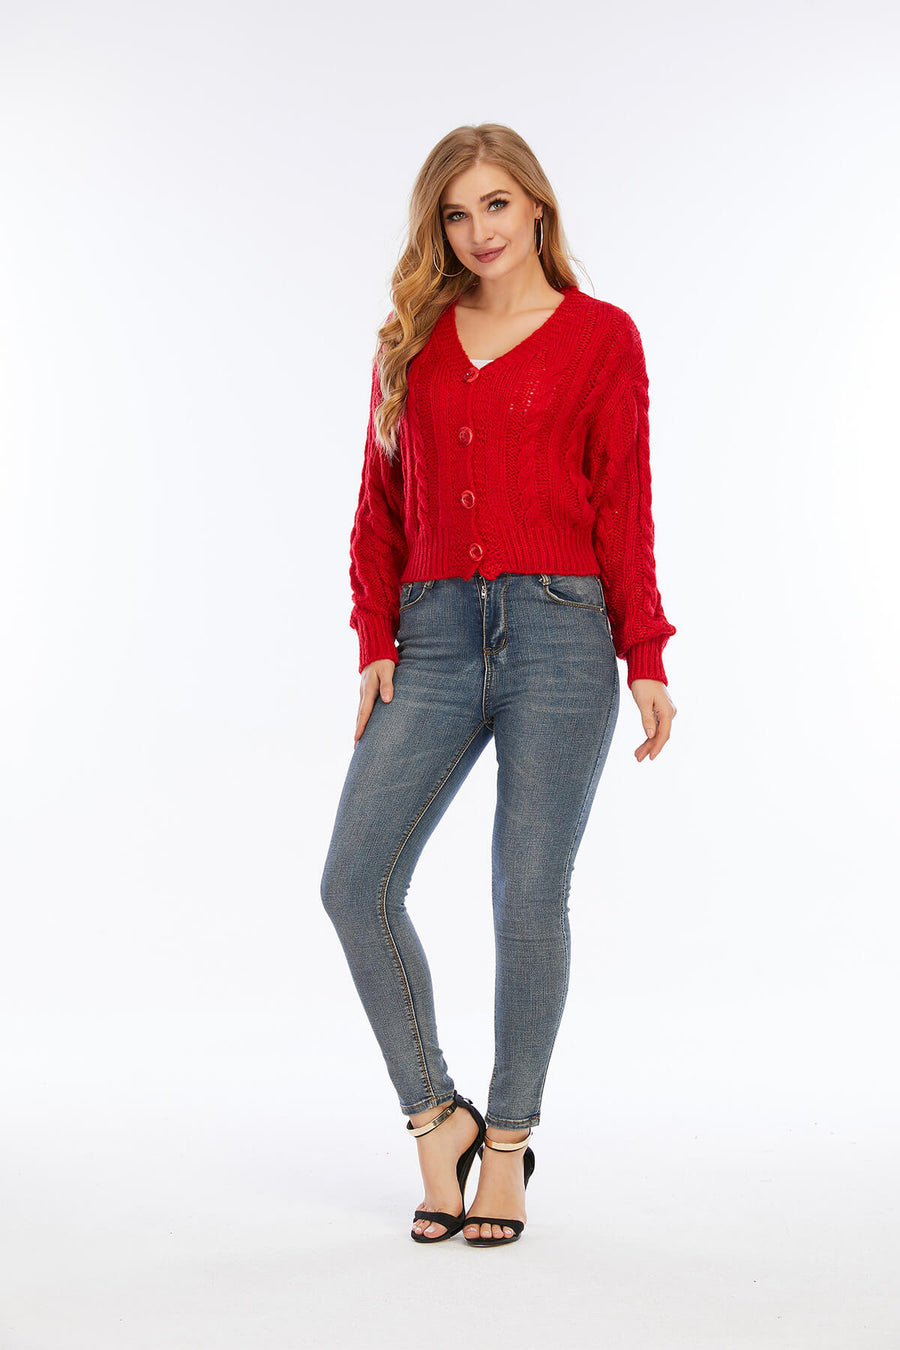 Mantra Pakistan Red Sweater With Buttons | Western Wear